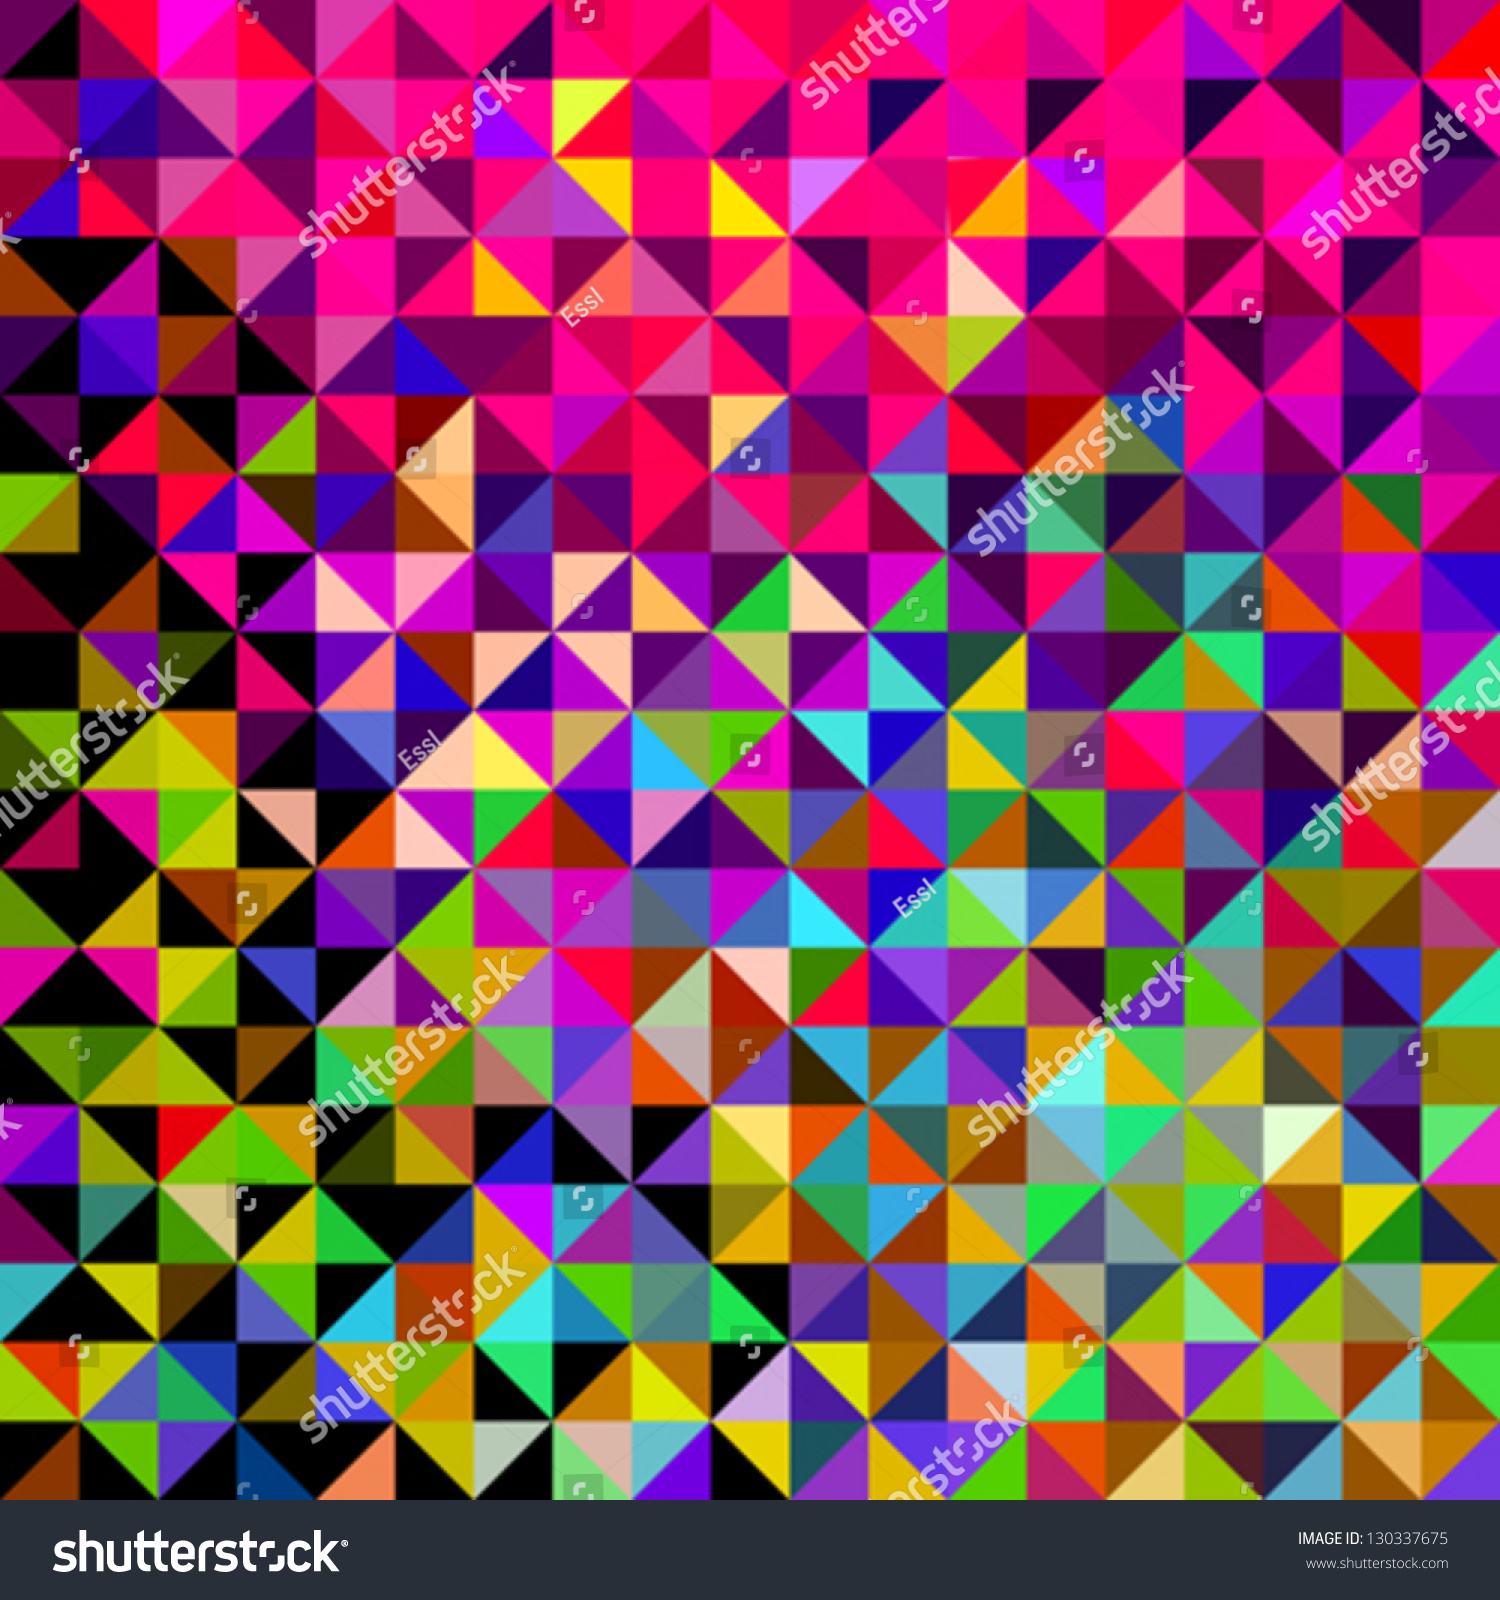 stock vector geometric background - photo #17